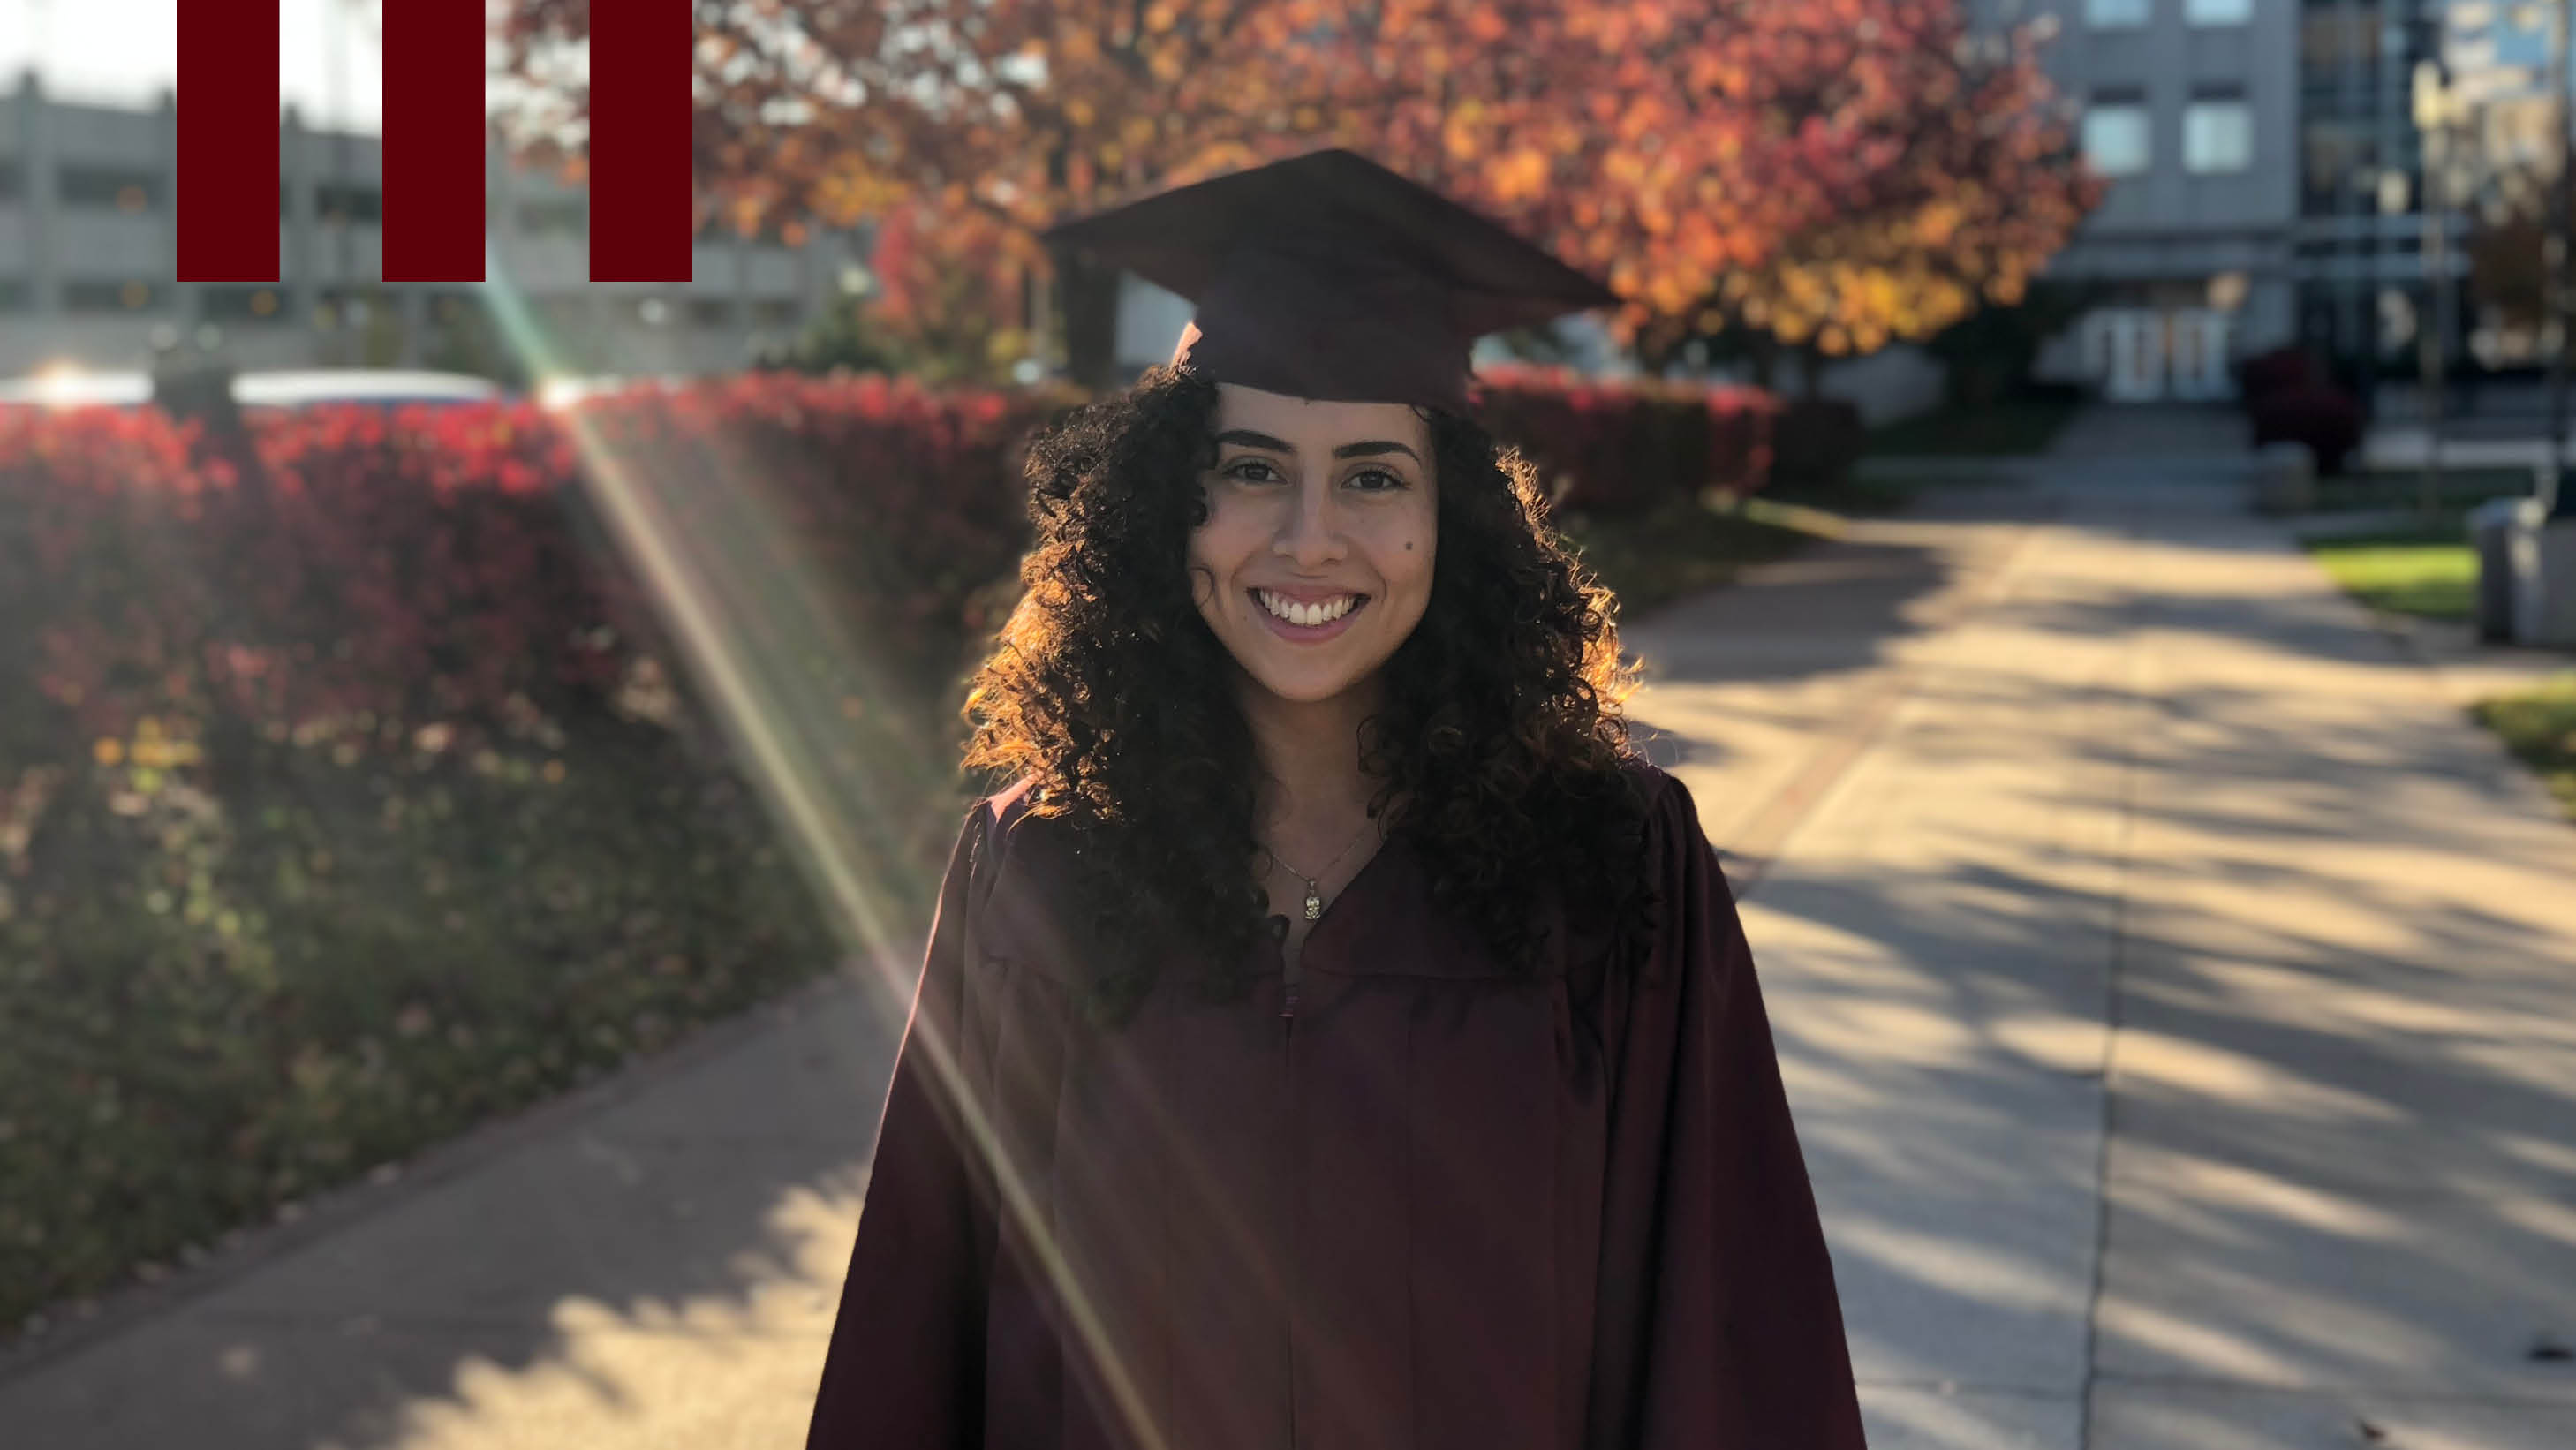 Laura Velandia, Construction Management Graduate from Missouri State University in her cap and gown on campus.